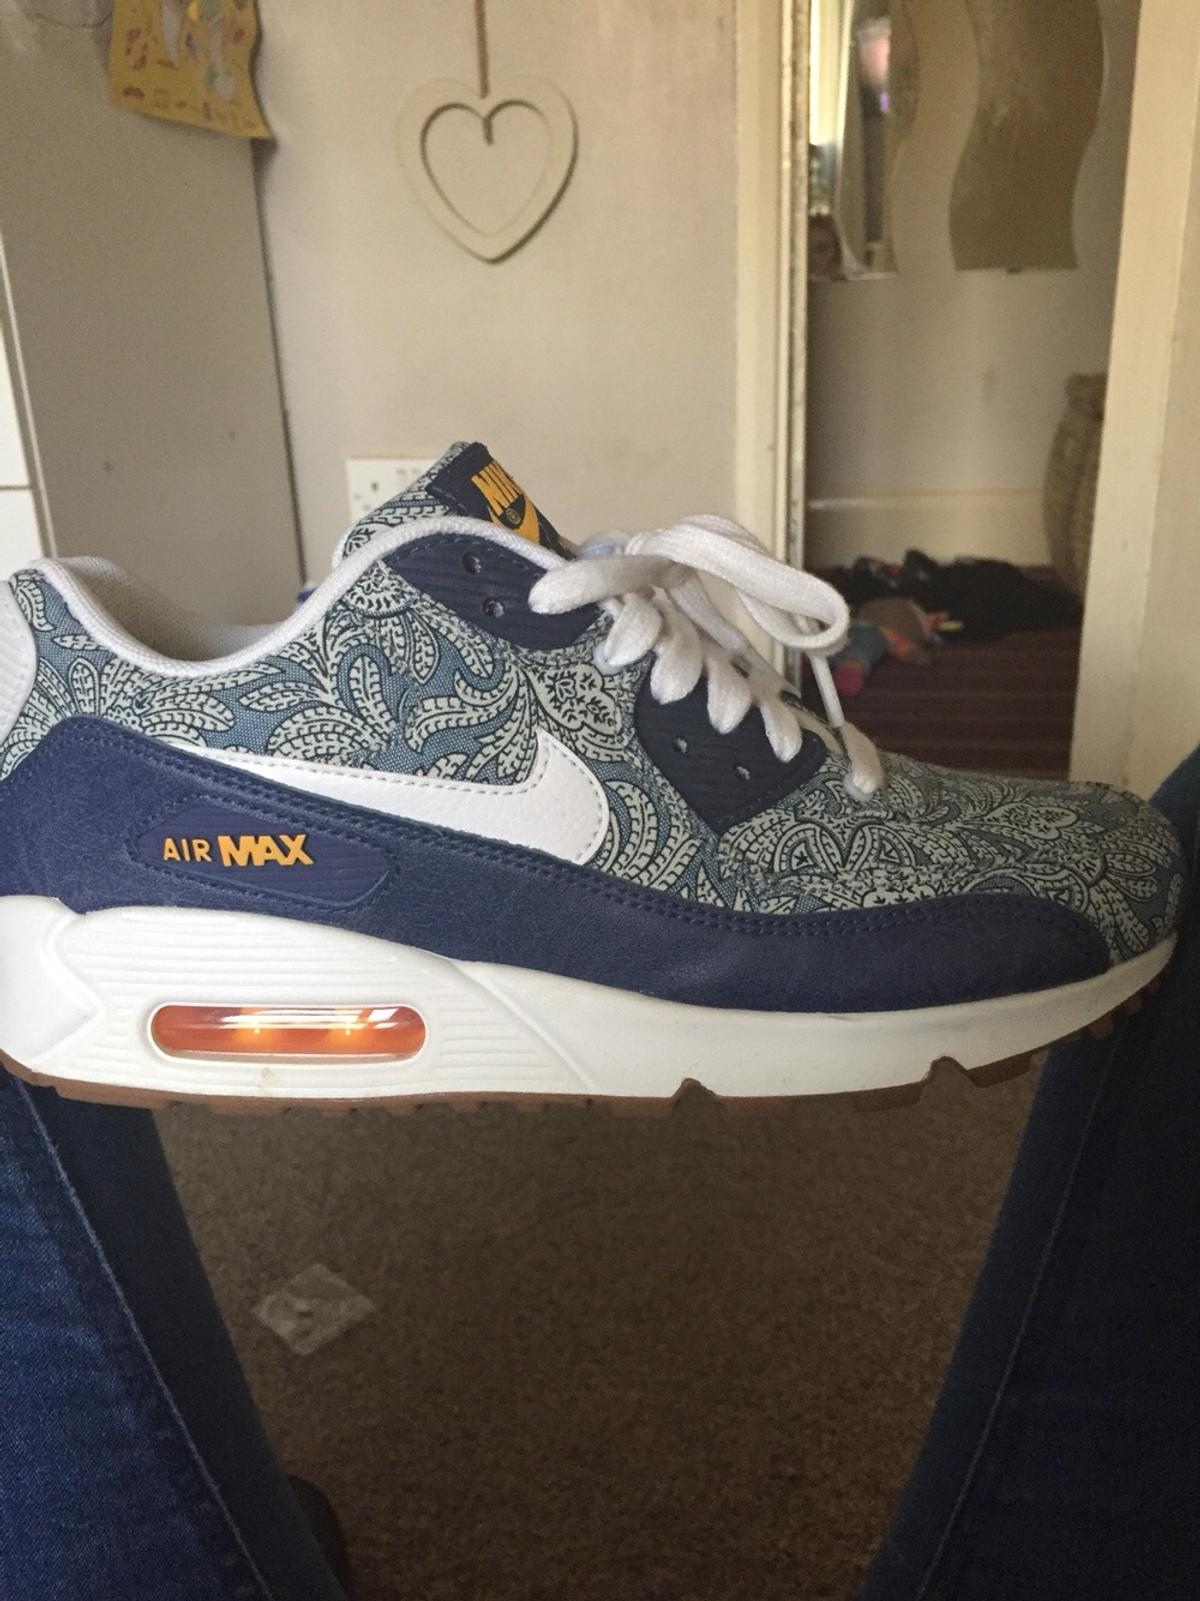 SOLD OUT LIMITED EDITION Air Max 90 liberty